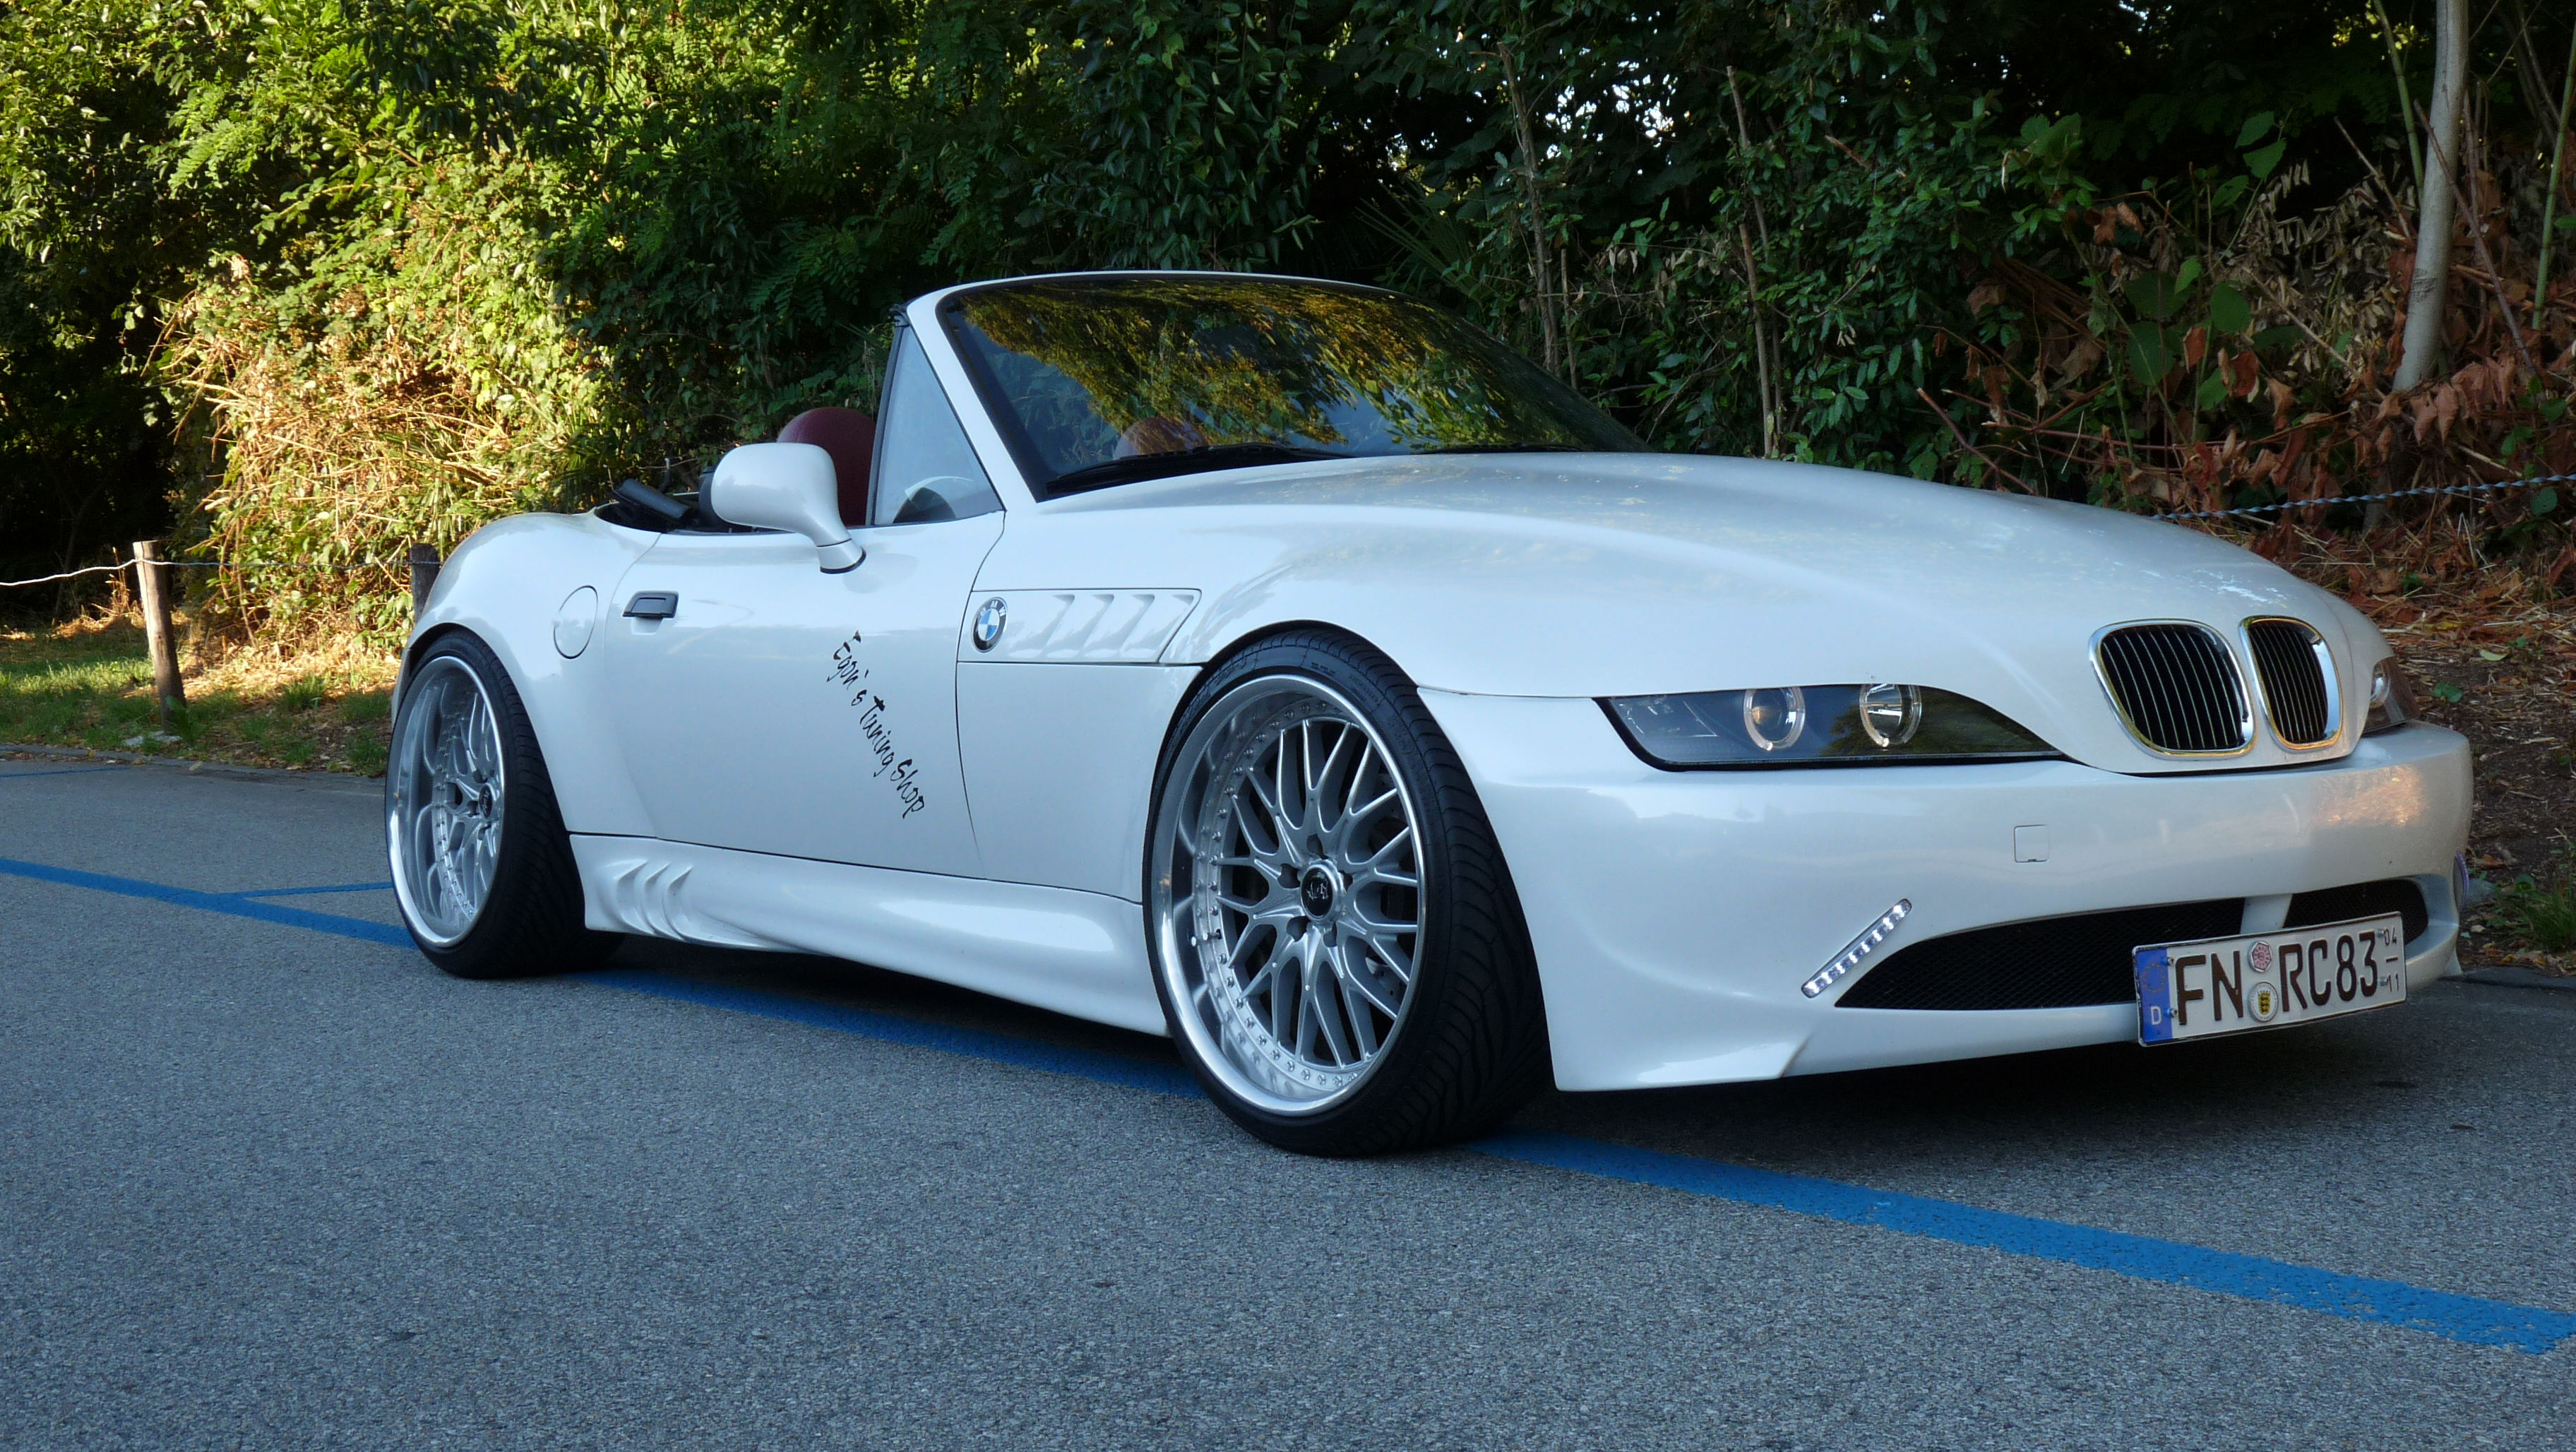 z3 white pearl bmw z1 z3 z4 z8 z3 roadster tuning fotos bilder stories. Black Bedroom Furniture Sets. Home Design Ideas